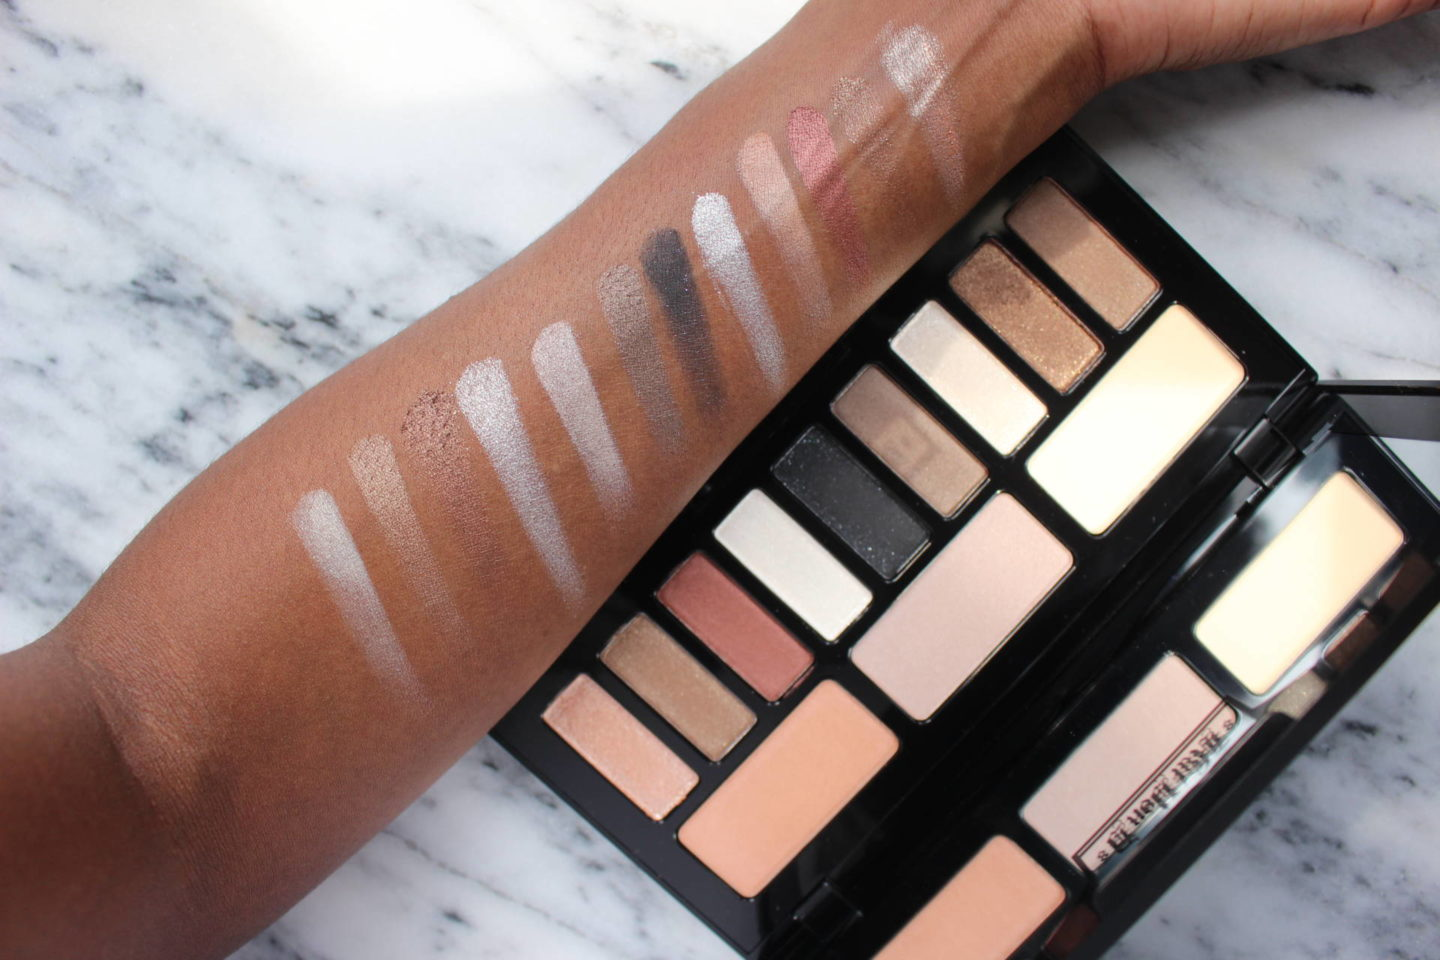 Kat Von D Shade Light Glimmer Eye Contour Palette